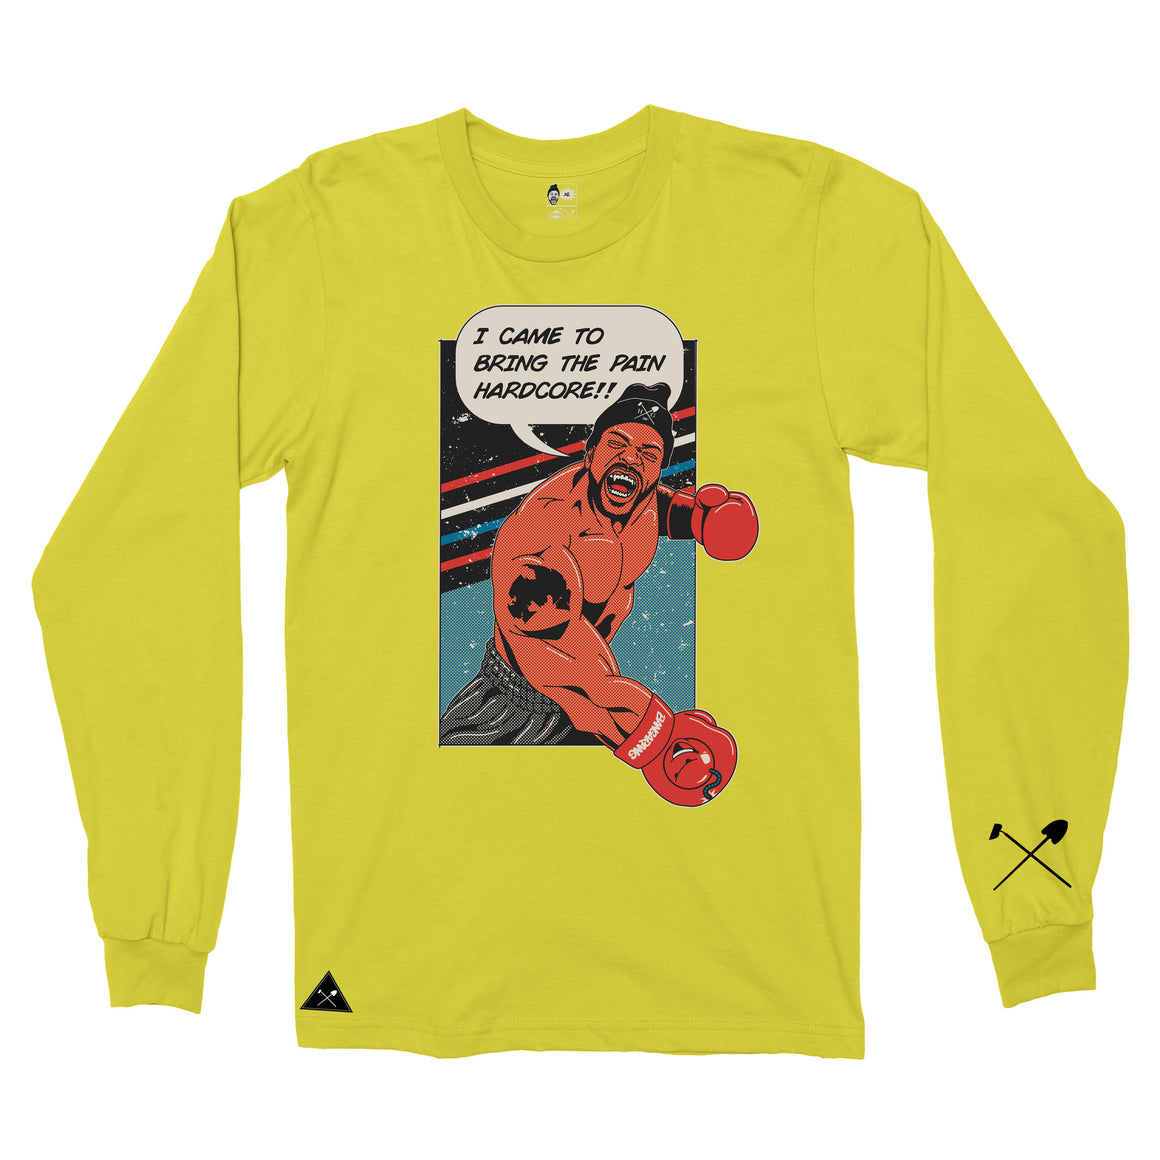 Homegrown x Method Man x Bangarang - Bring Da Pain Long sleeve T-shirt - Yellow